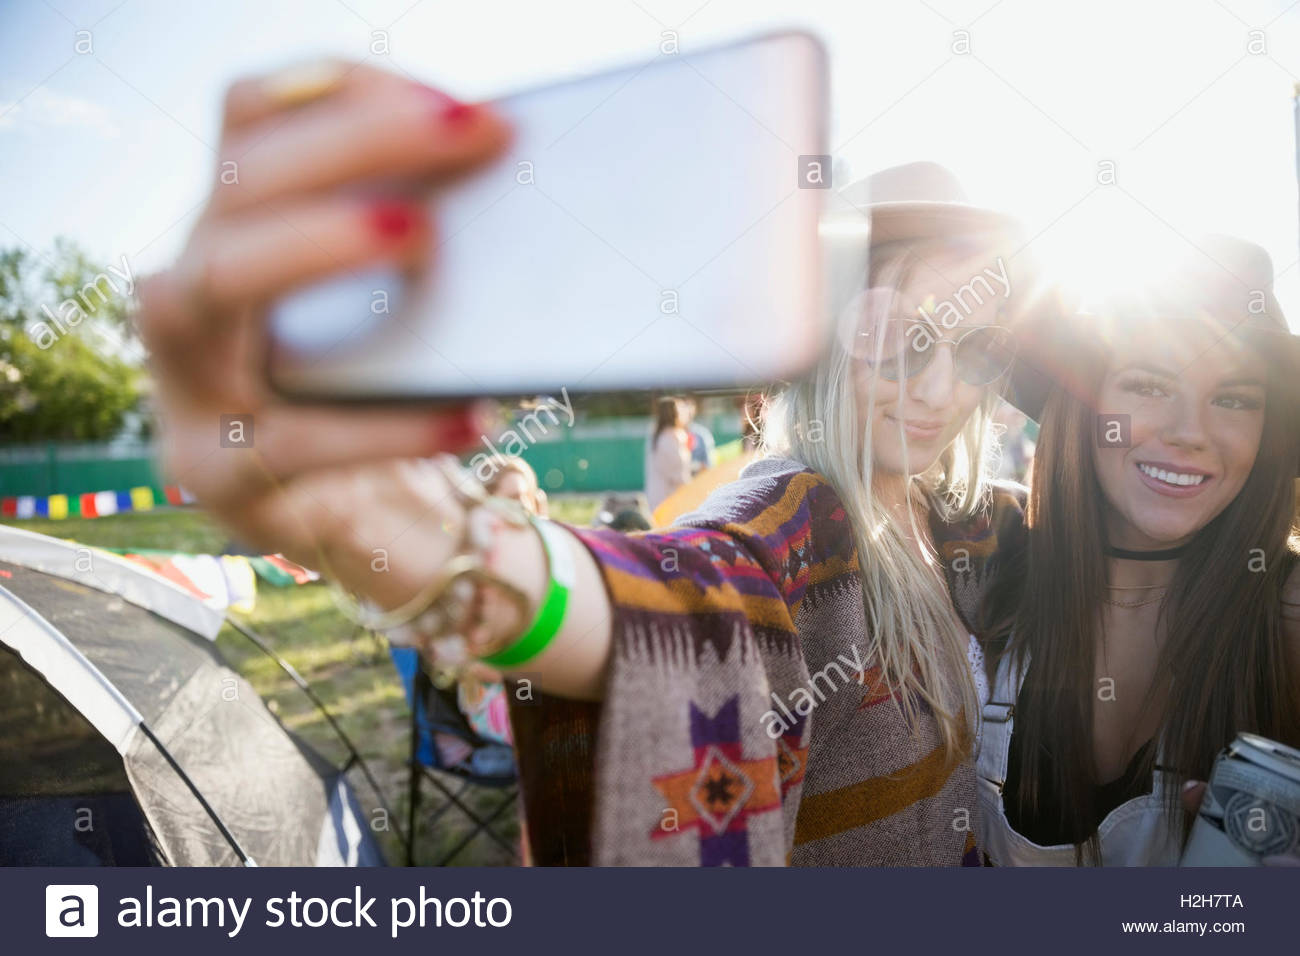 Young women taking selfie at summer music festival campsite - Stock Image